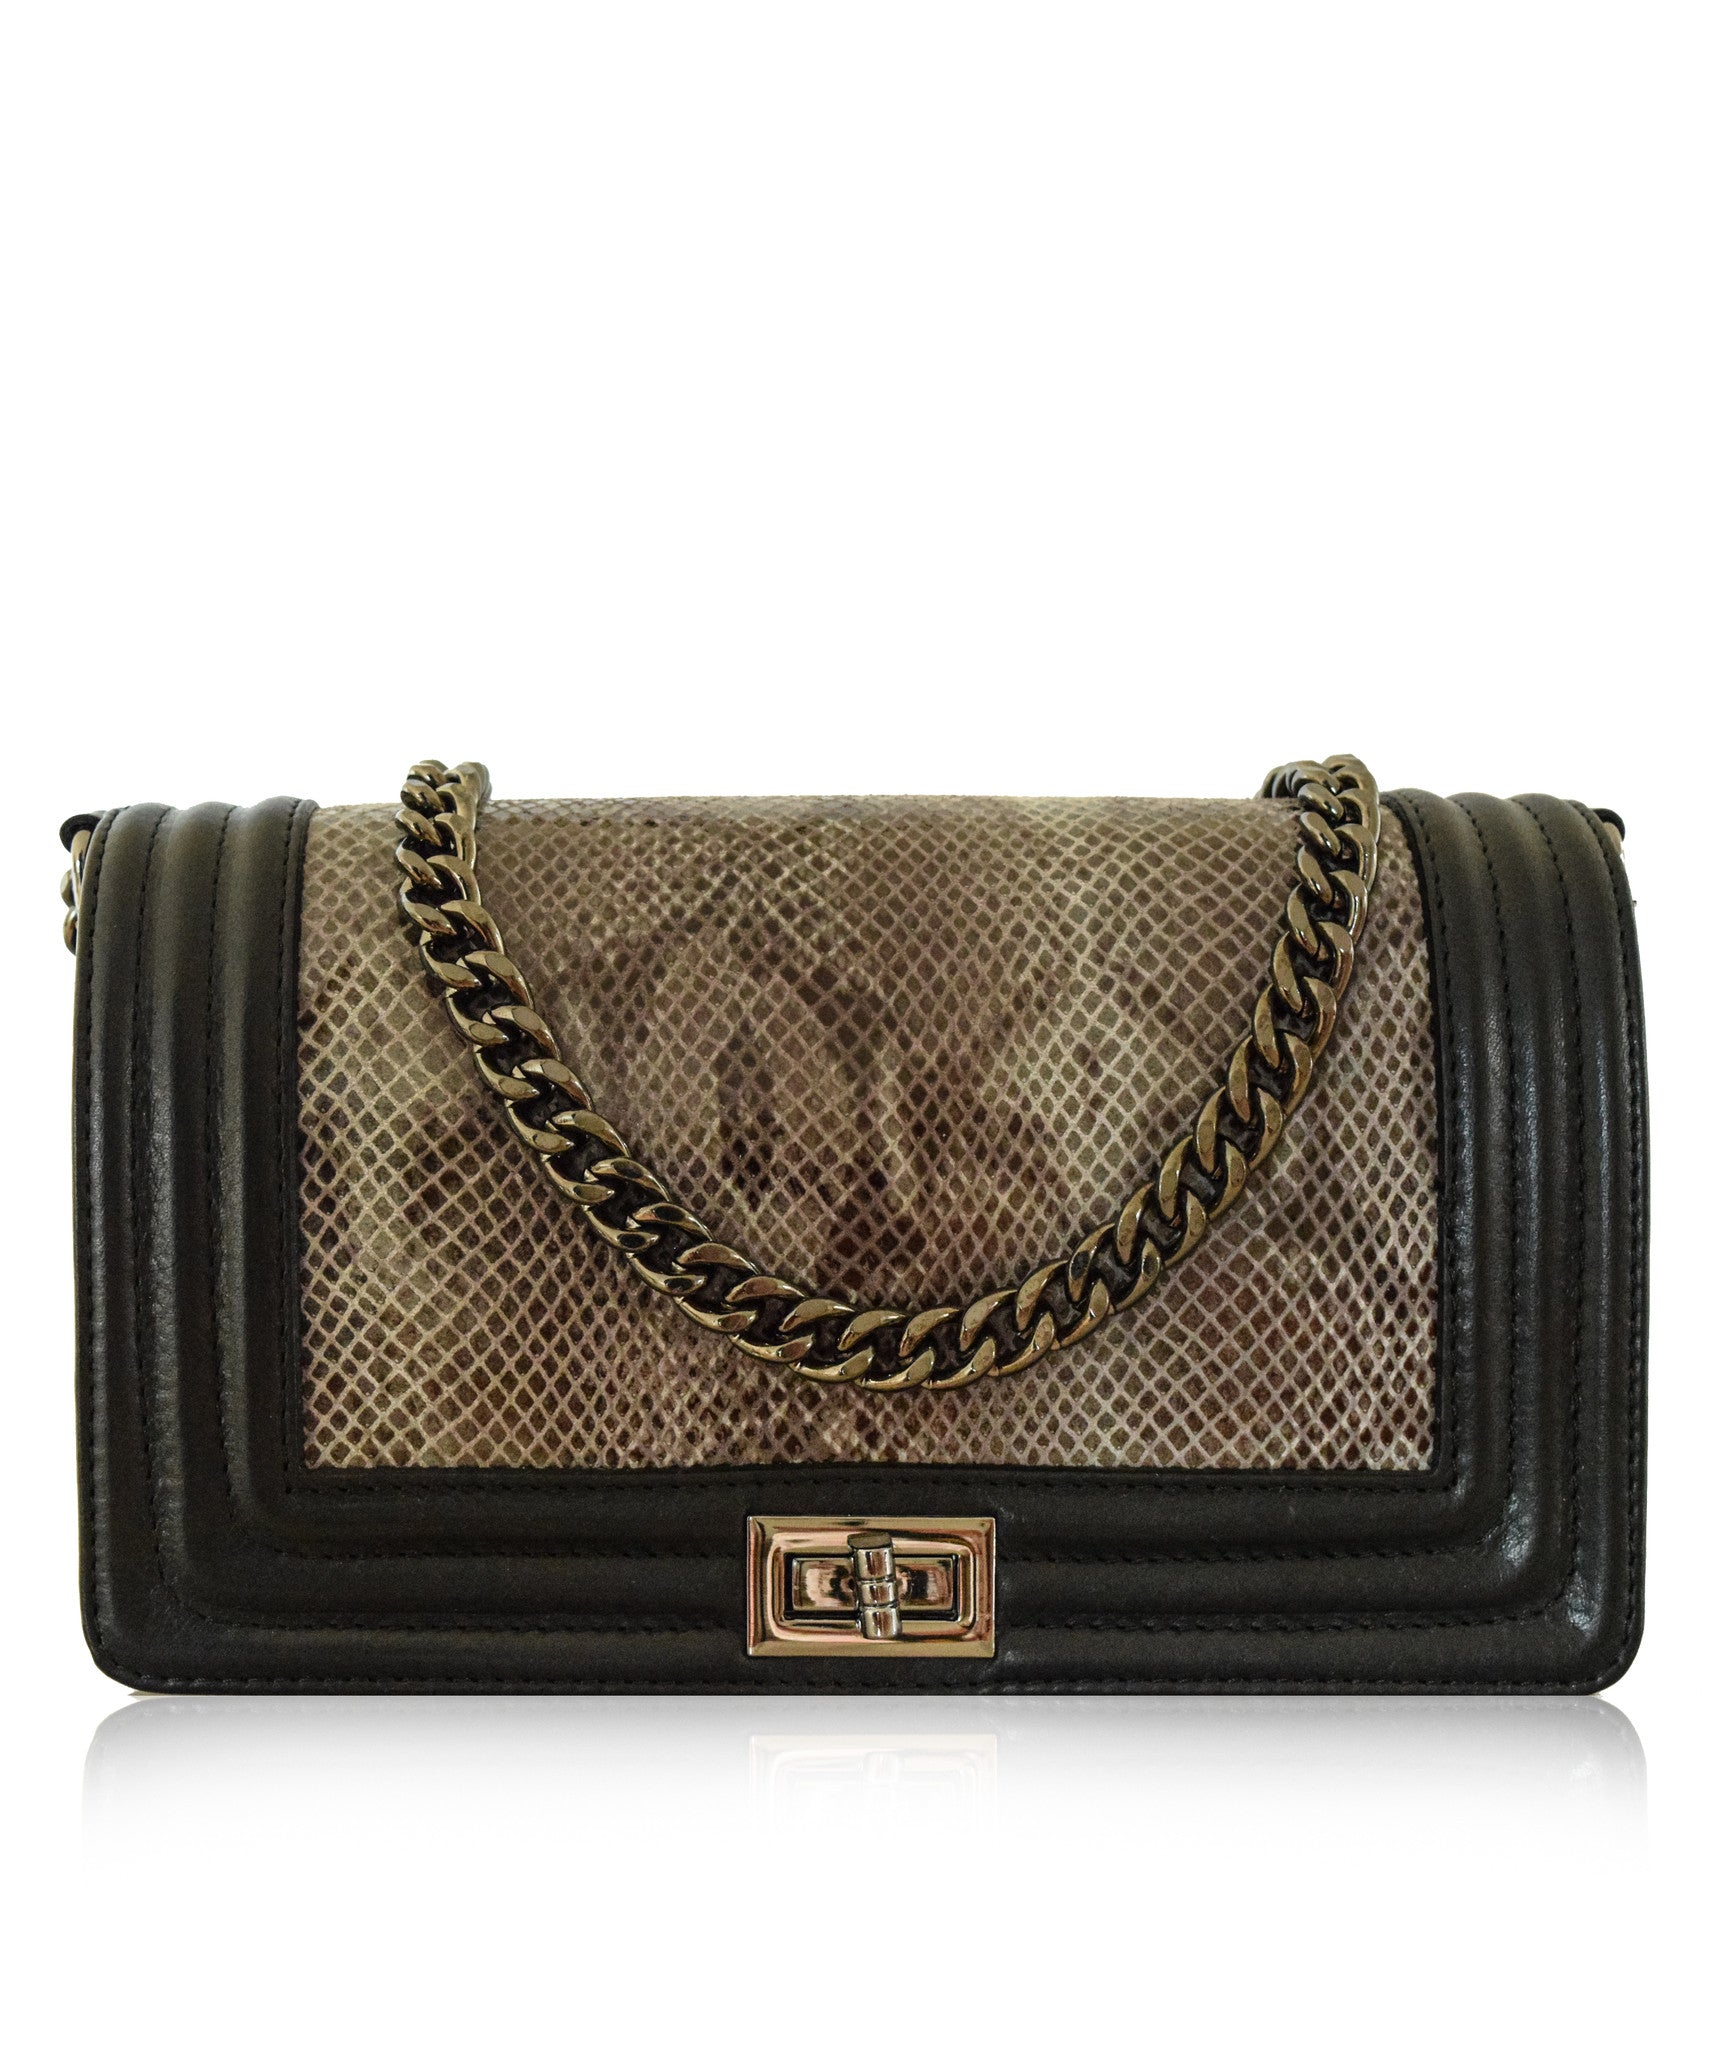 SORANO CHANEL Style Le Boy Medium Flap Bag in Charcoal Python ... 2b9f541f55f98